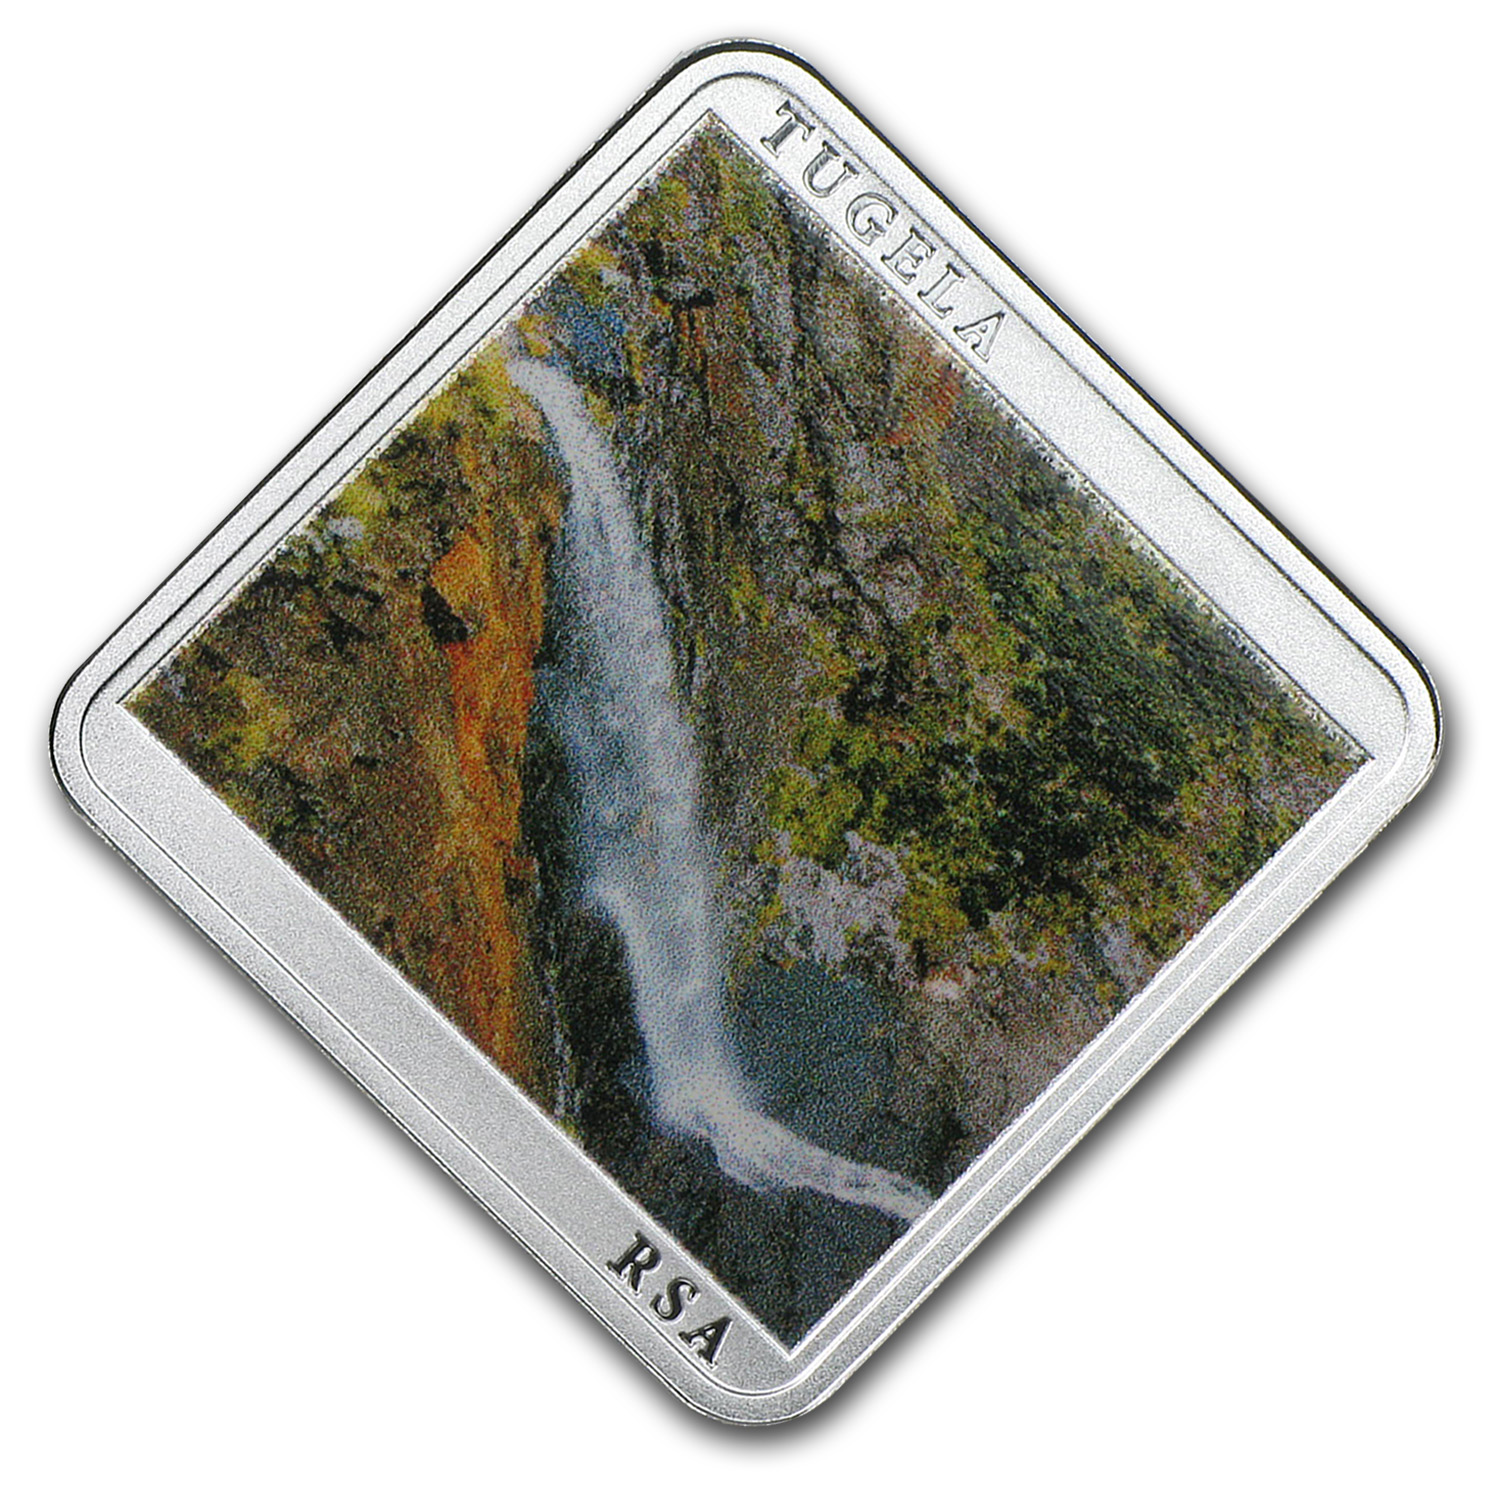 2015 Niue Silver Tugela Waterfall Square Coin Proof